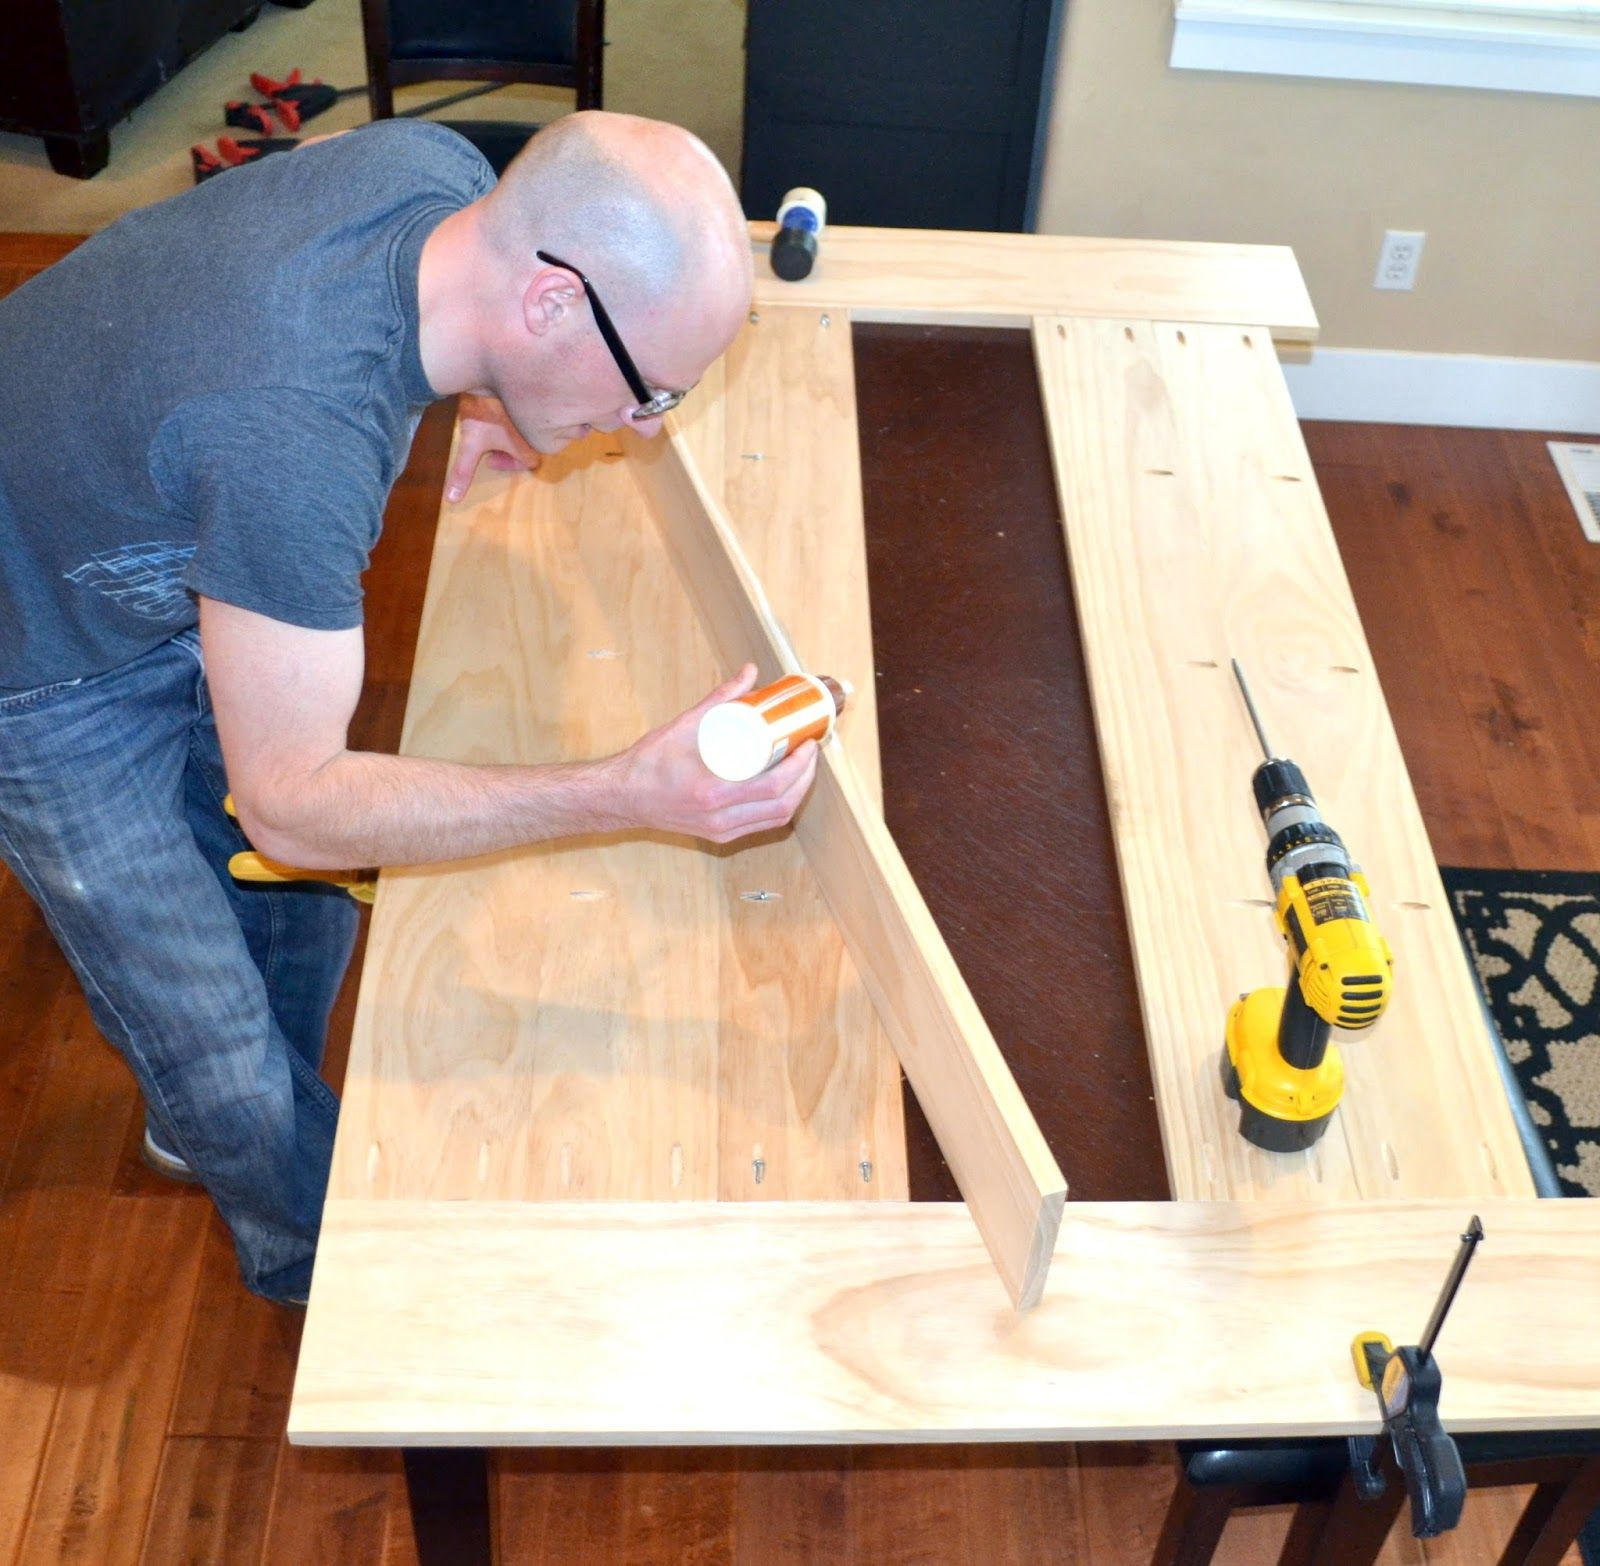 Easy Diy Planked Table Top Cover For Your Existing Table Plank